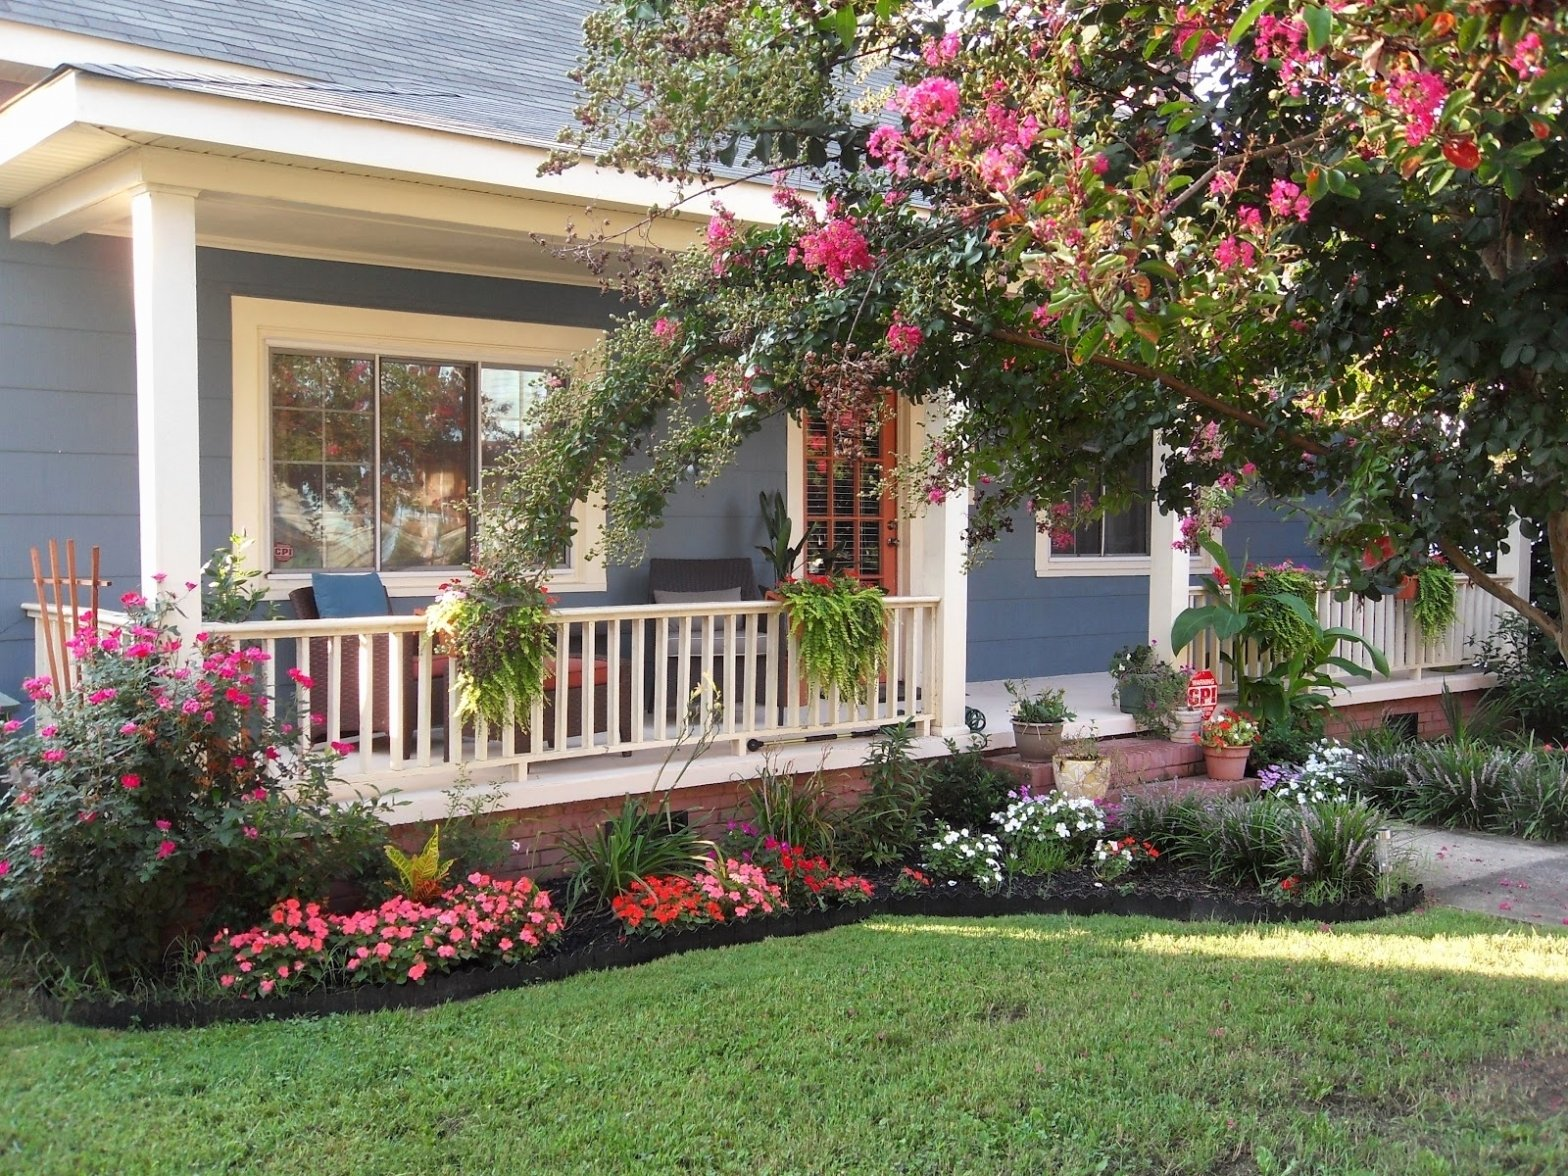 exterior: picture 37 of 46 landscape ideas front yard simple lovely